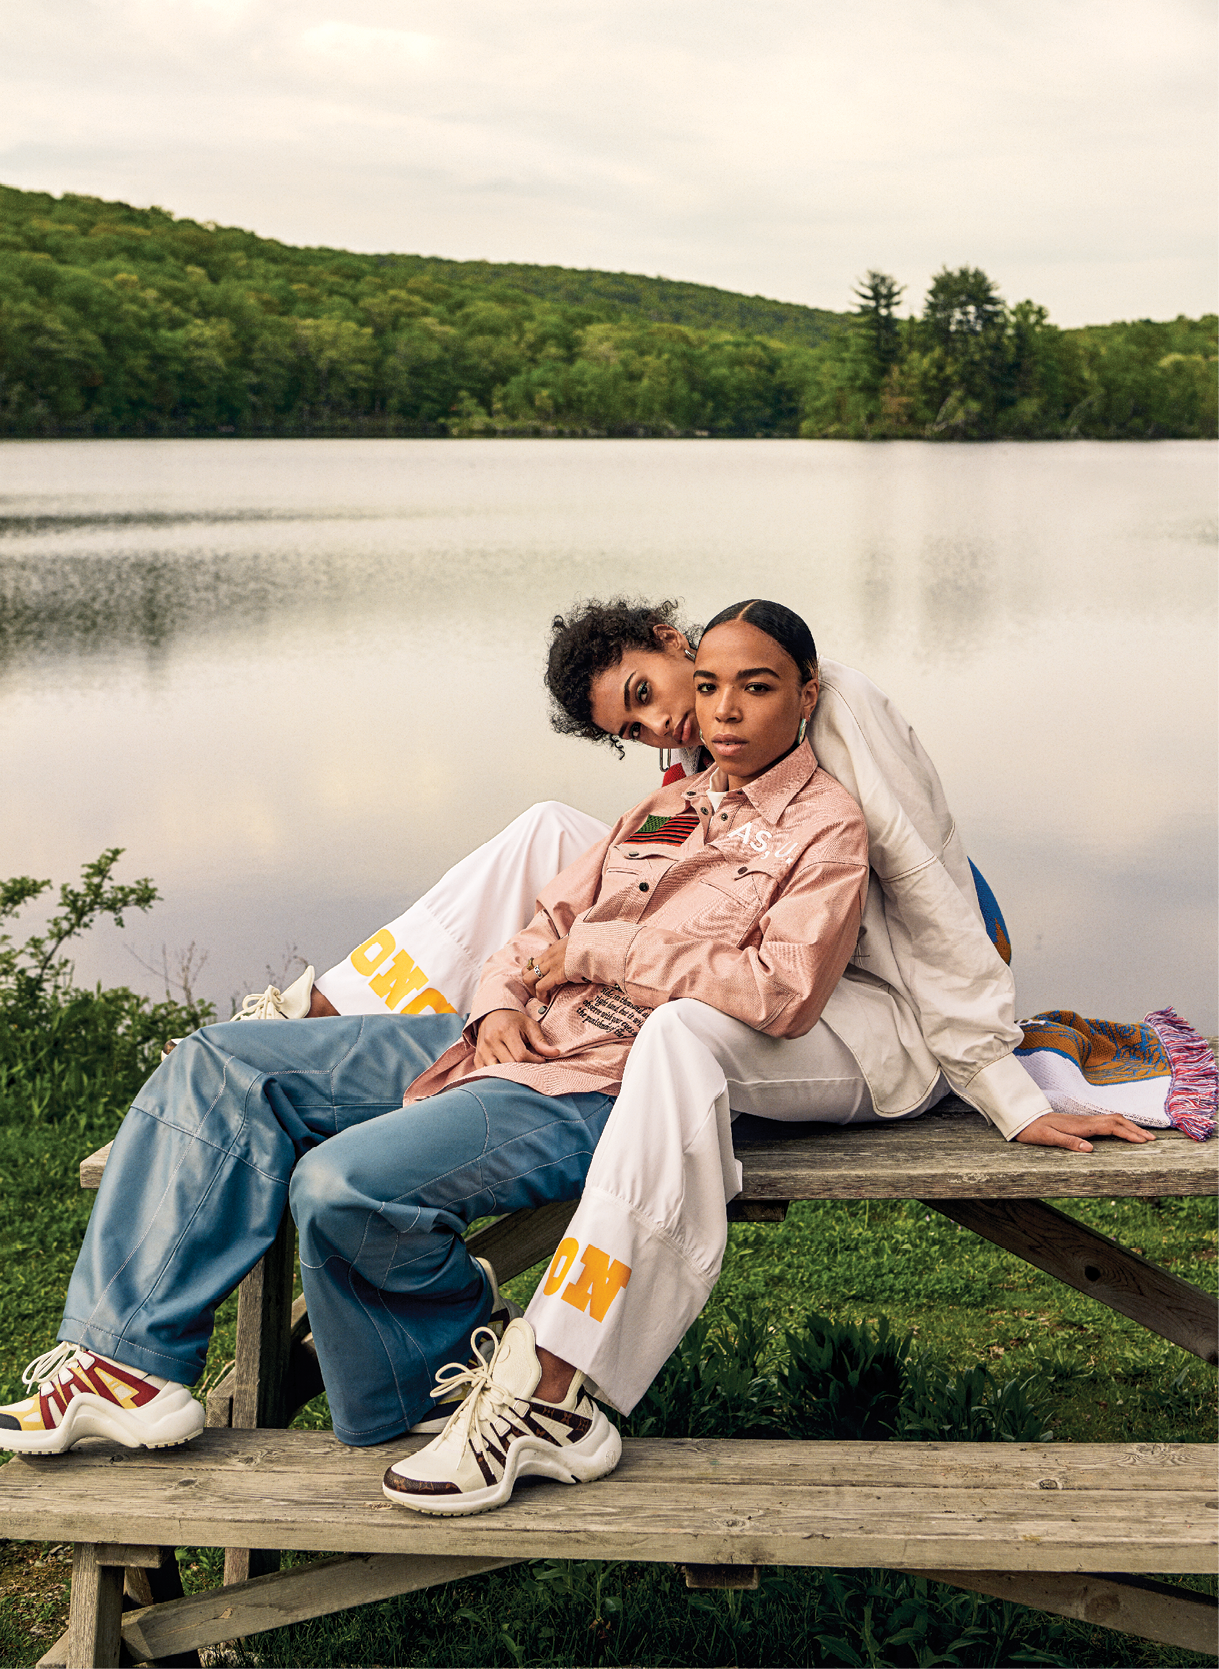 AMERICAN VOGUE / RYAN MCGINLEY / AUGUST 2018